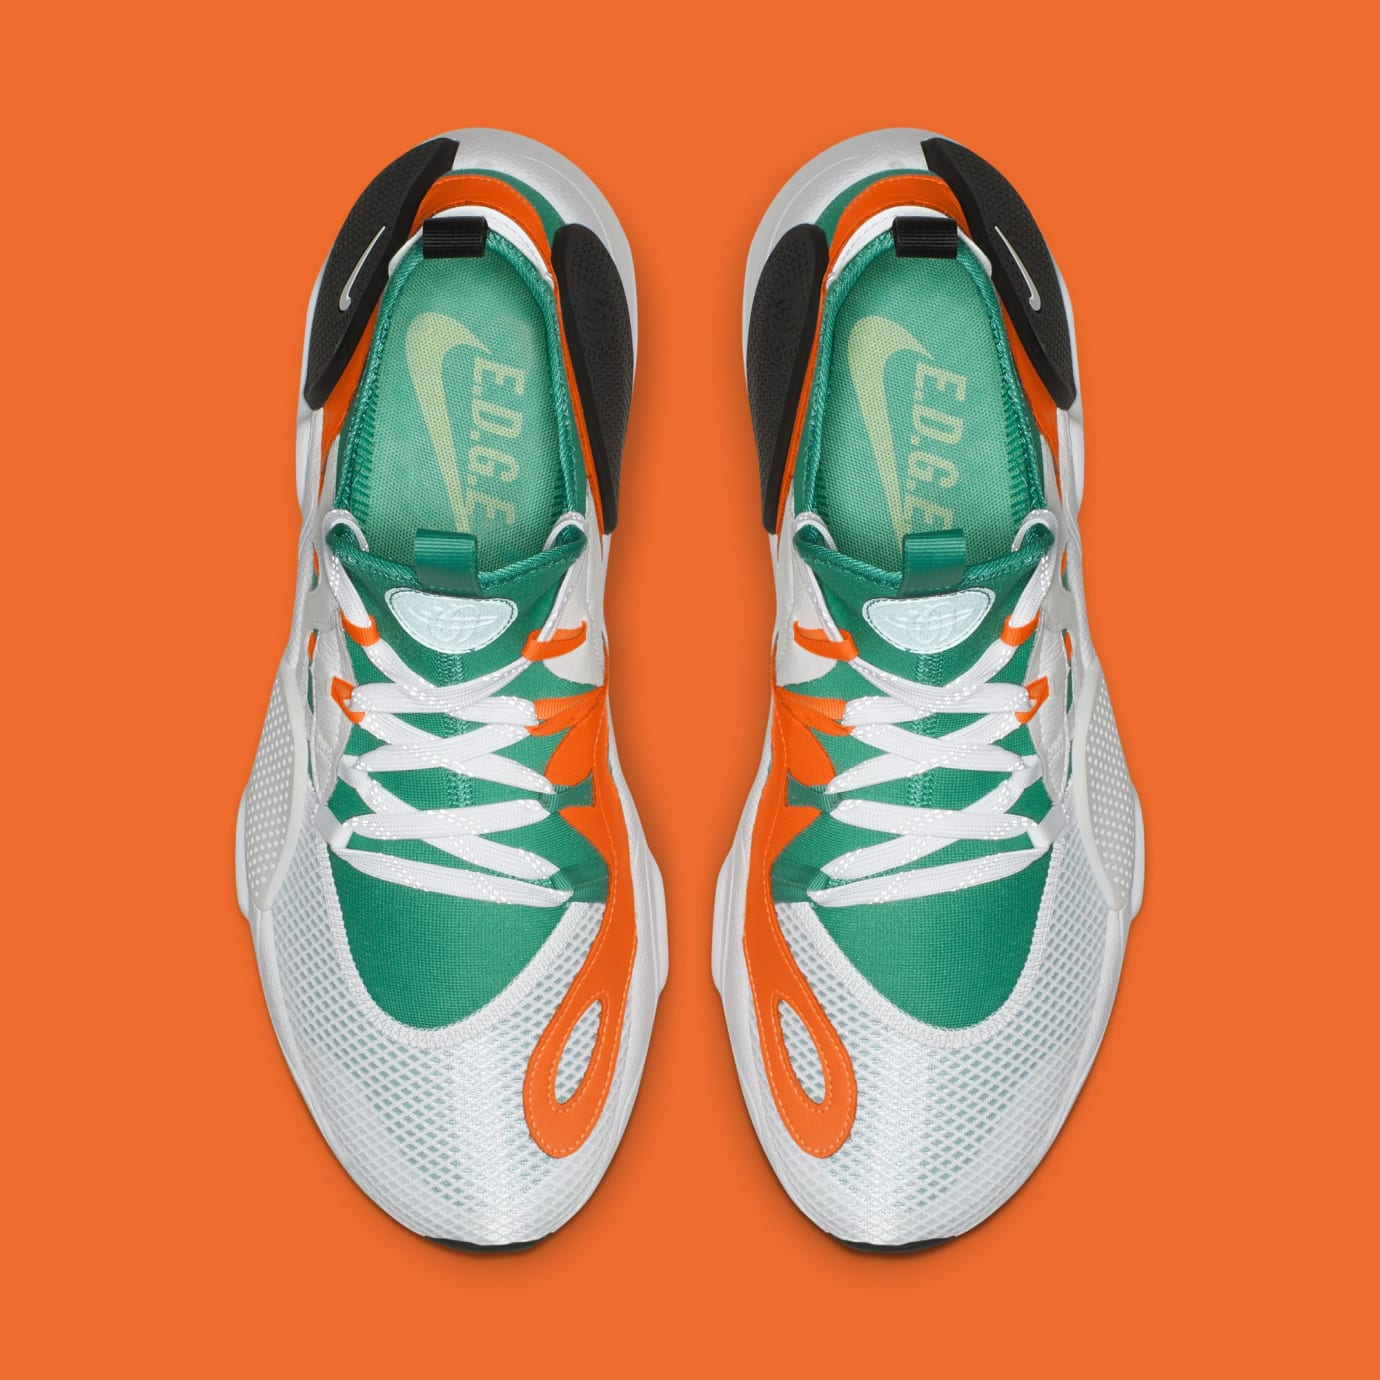 Nike Huarache E.D.G.E. TXT QS 'White/Clear Emerald/Total Orange' BQ5206-100 (Top)